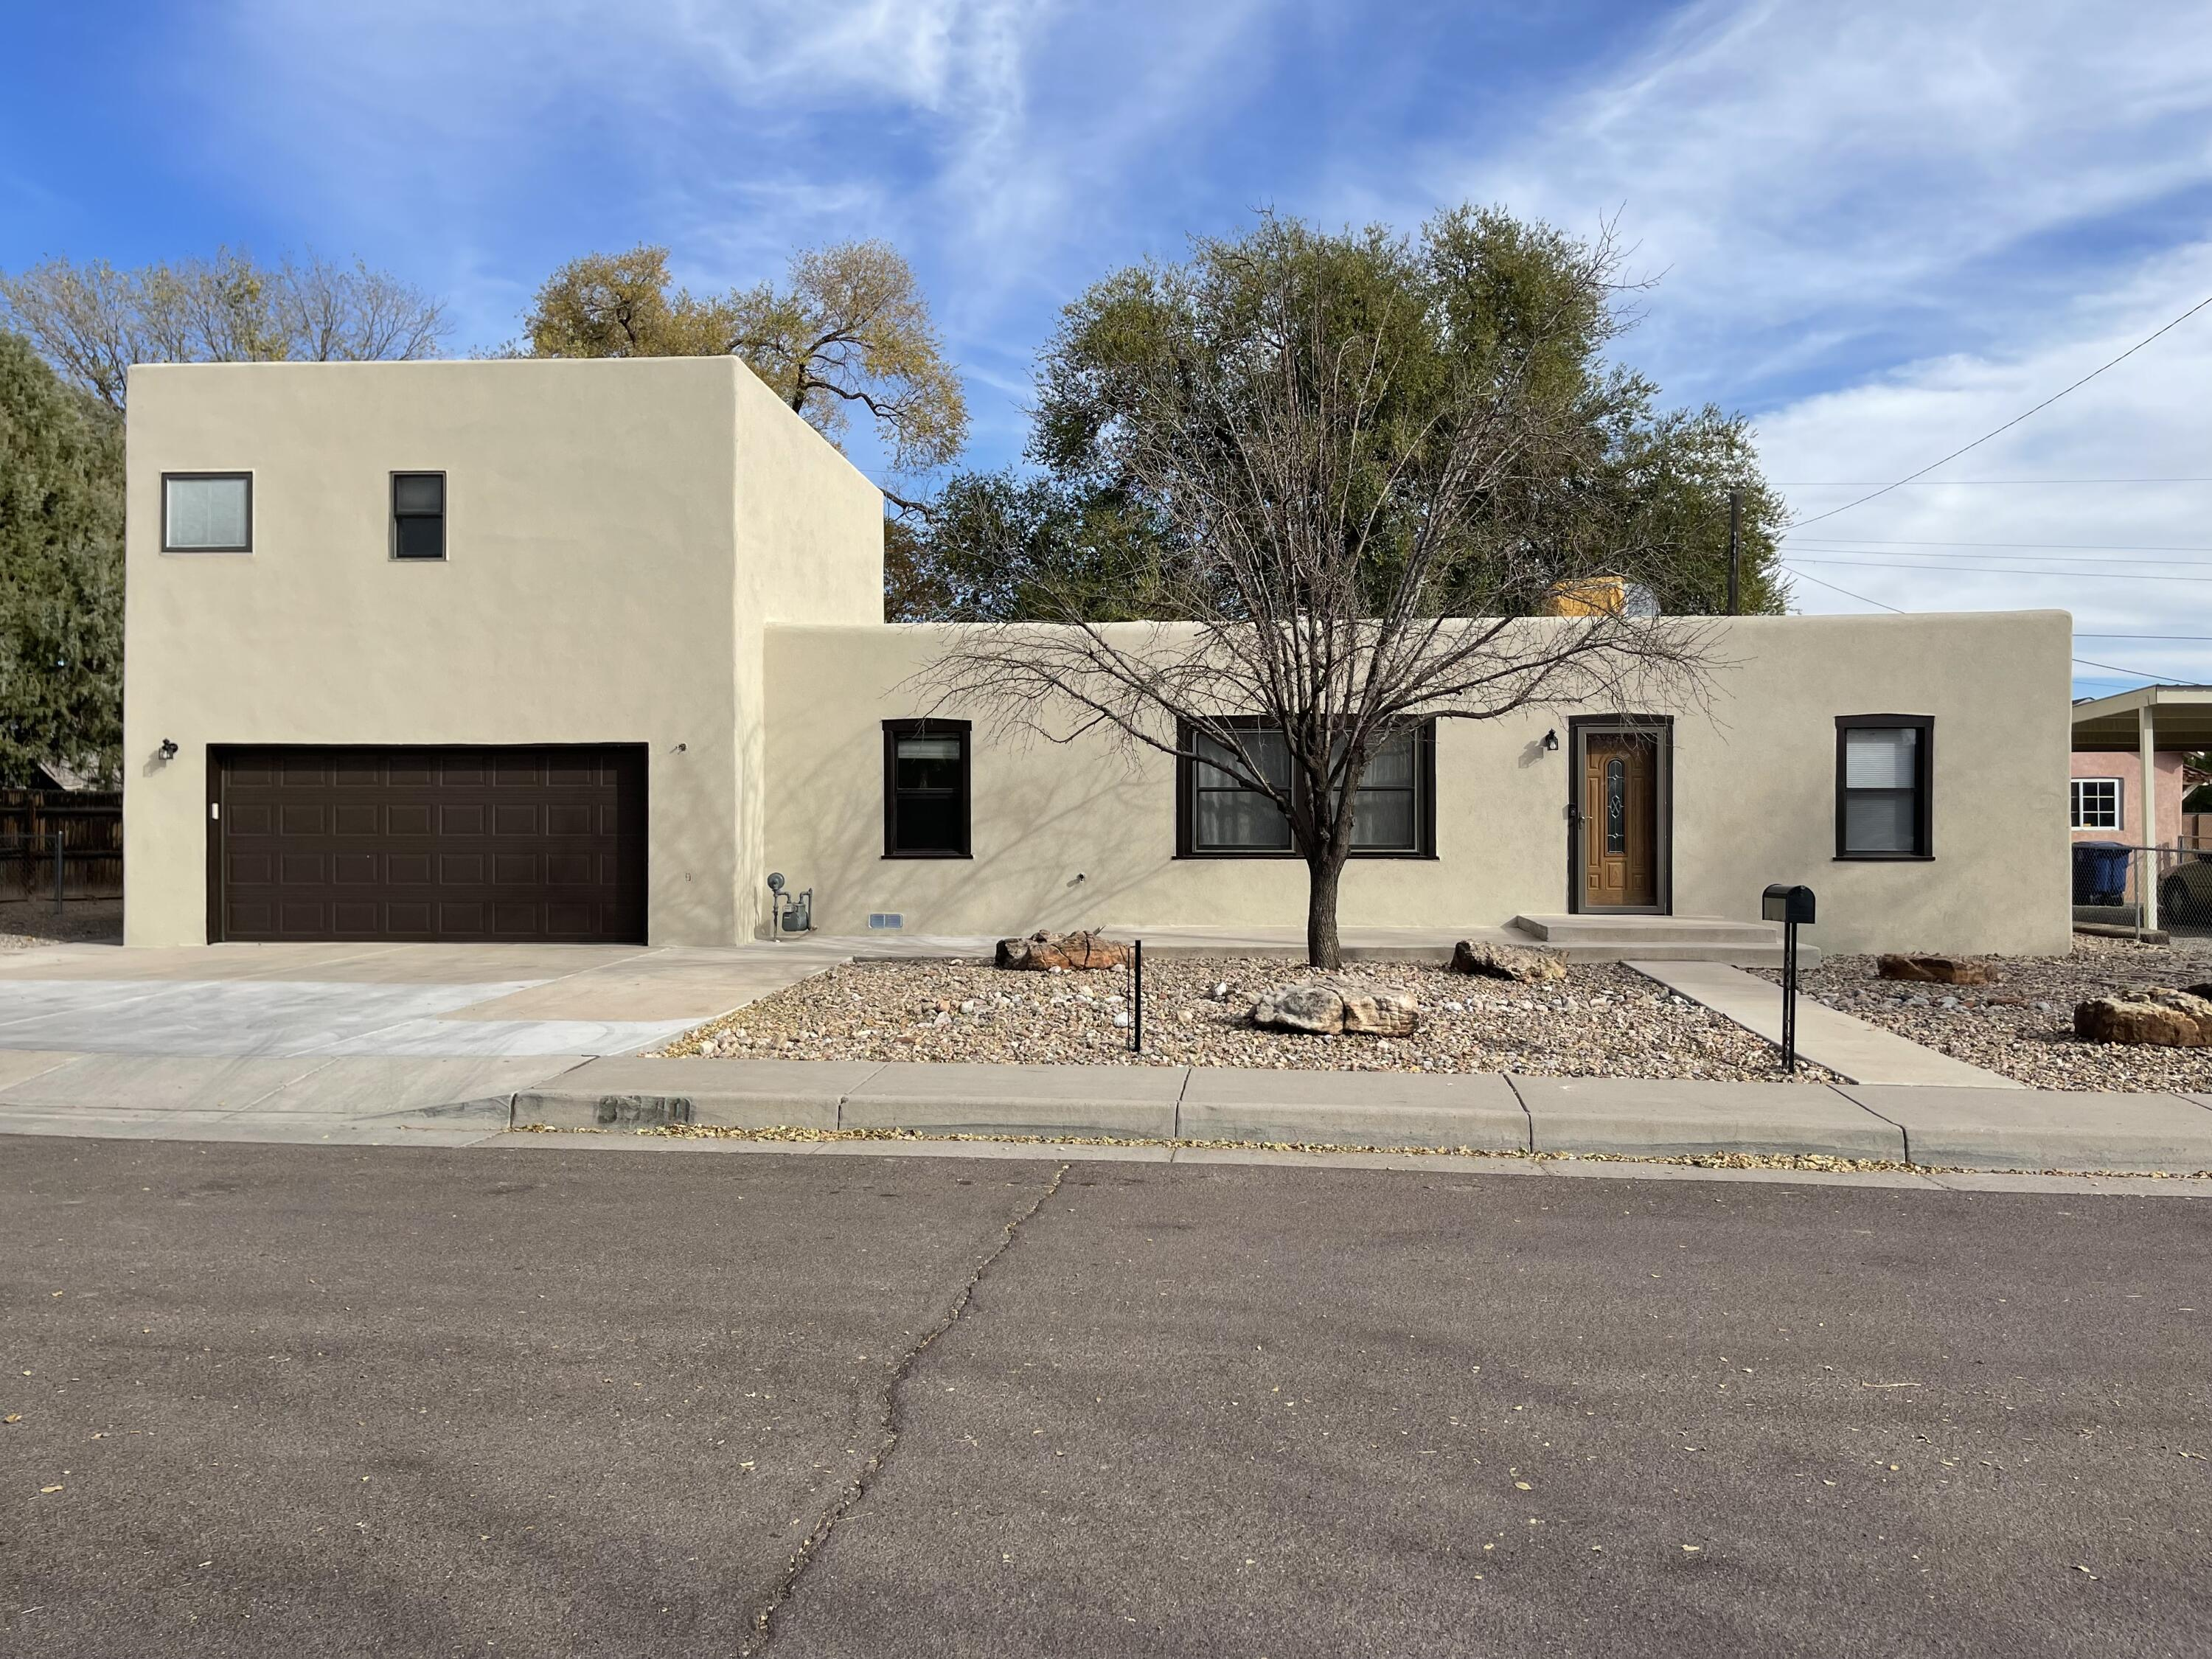 Beautiful home in the north valley at the end of a street!  Split floorplan with a master bedroom, den, and oversized garage in the addition. Layout is designed very well for an older home with a logical flow.  A very private master bedroom with a large on-suite that includes a soaking tub and walk-in shower id the perfect place to relax after a long day. Enjoy the peaceful backyard with irrigation rights to the small channel on the north end of the lot. This one will not last long!